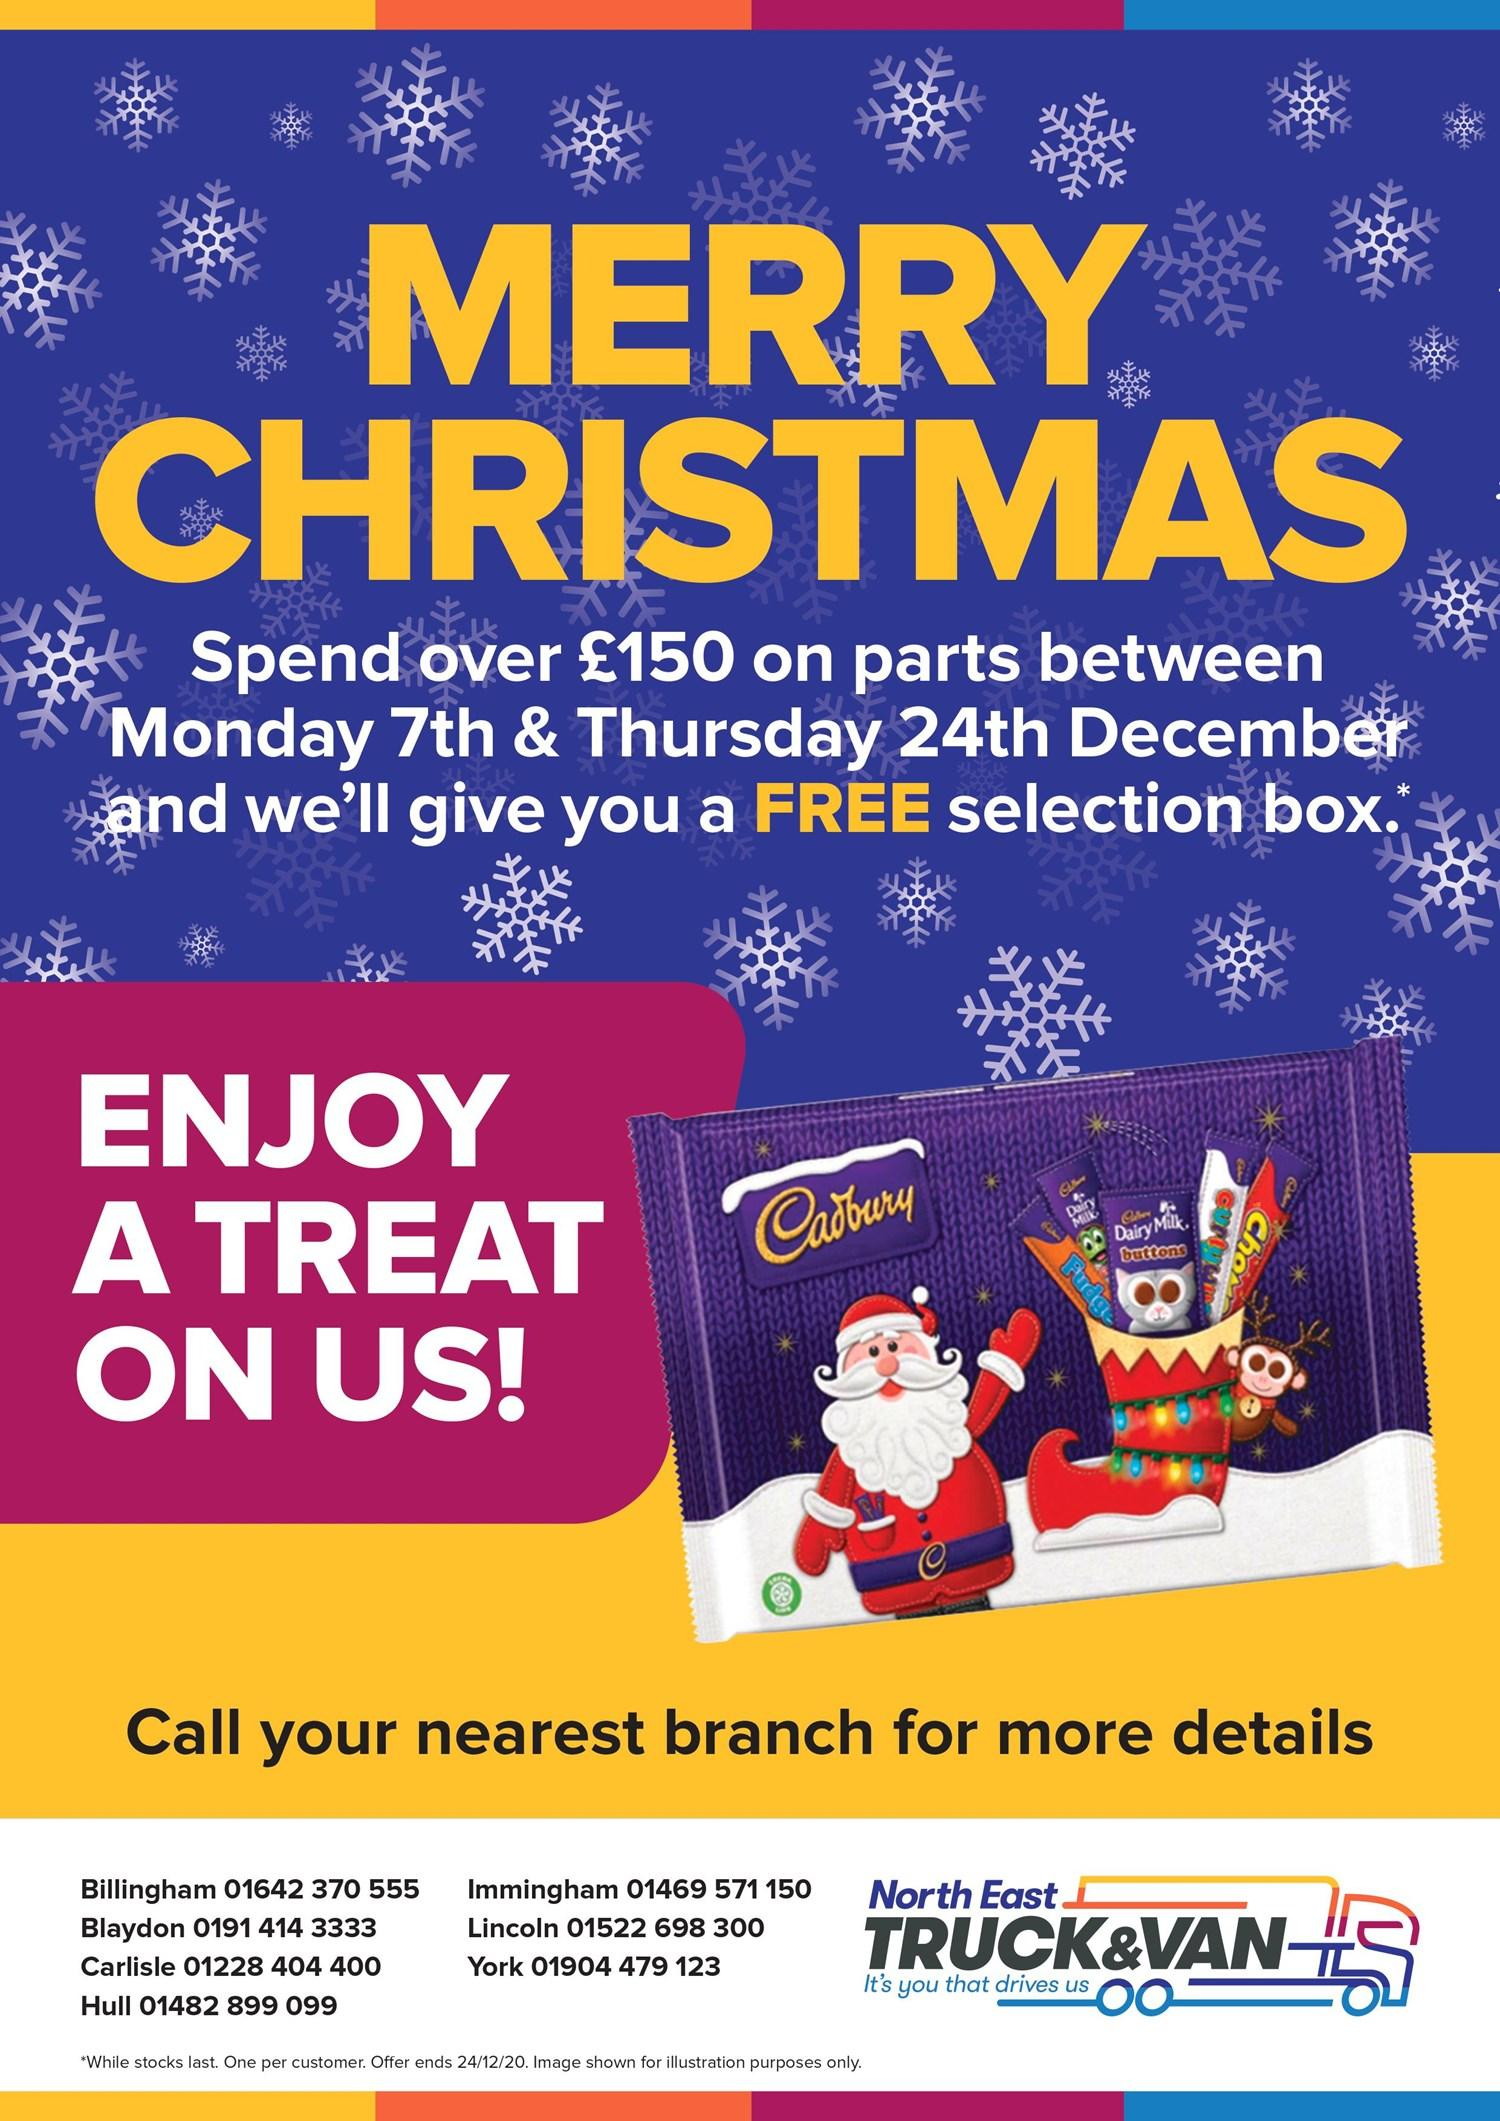 Free Selection Box offer at North East Truck and Van